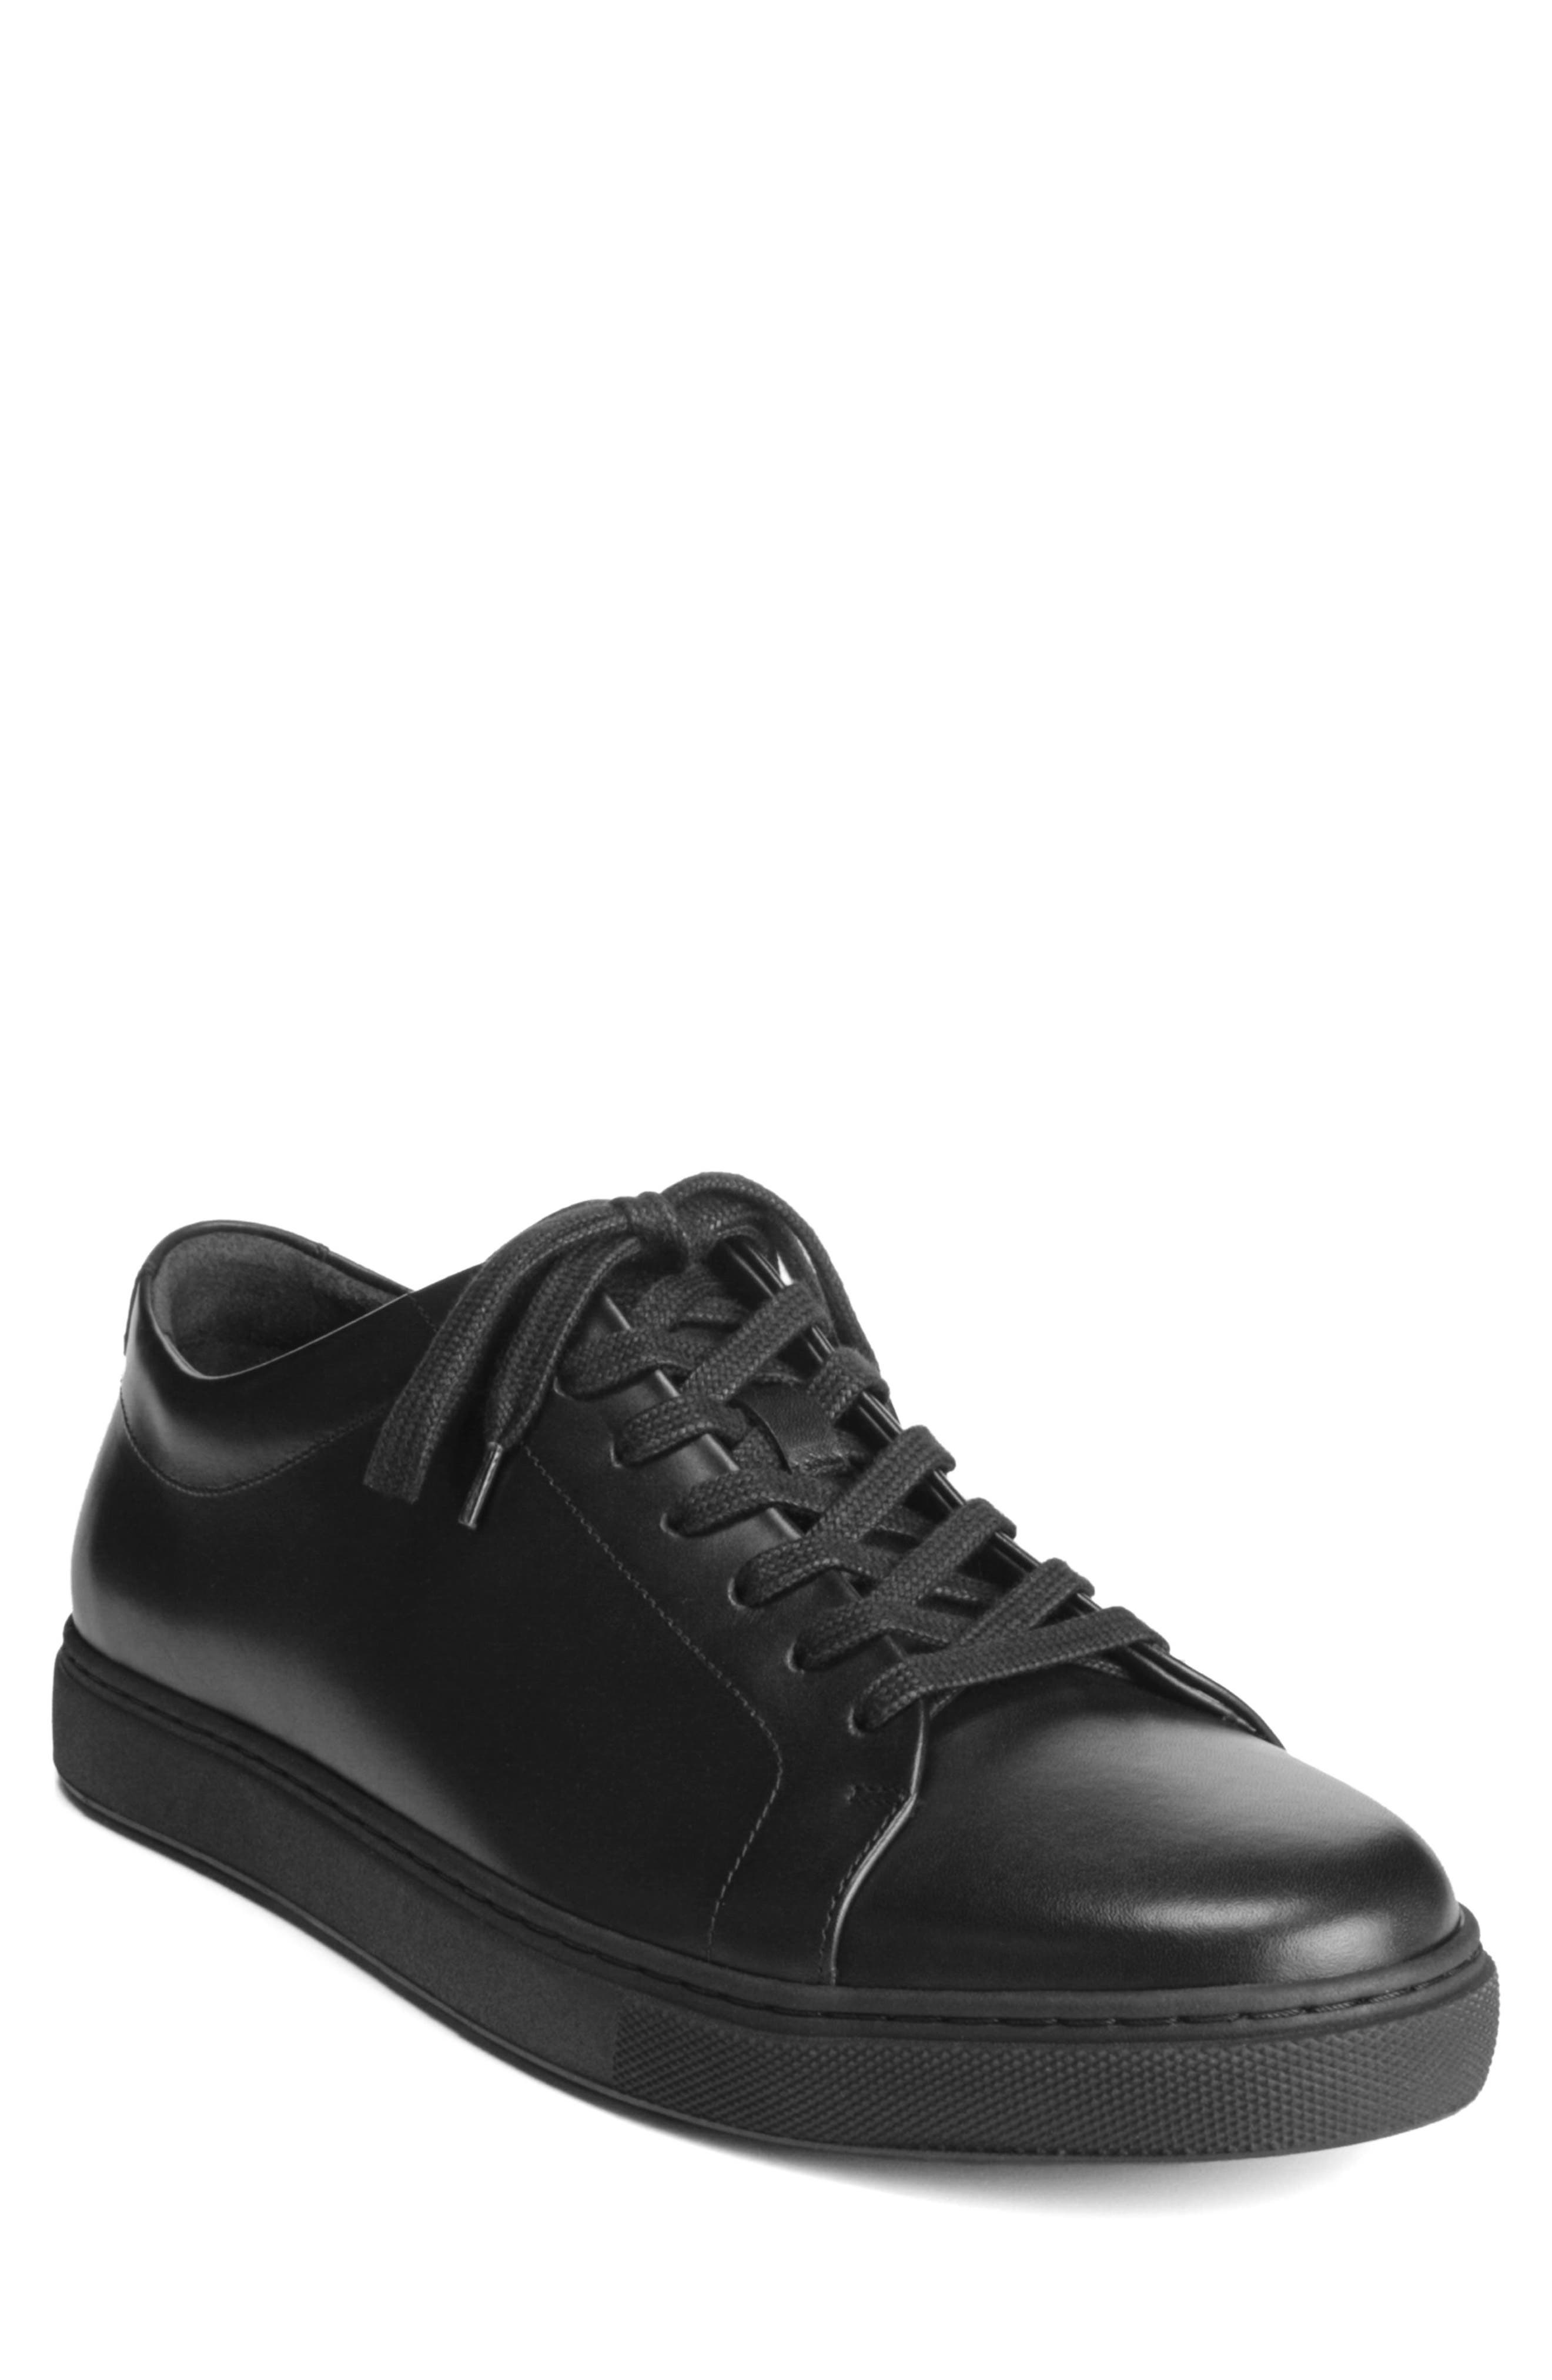 Canal Court Sneaker,                             Main thumbnail 1, color,                             BLACK LEATHER